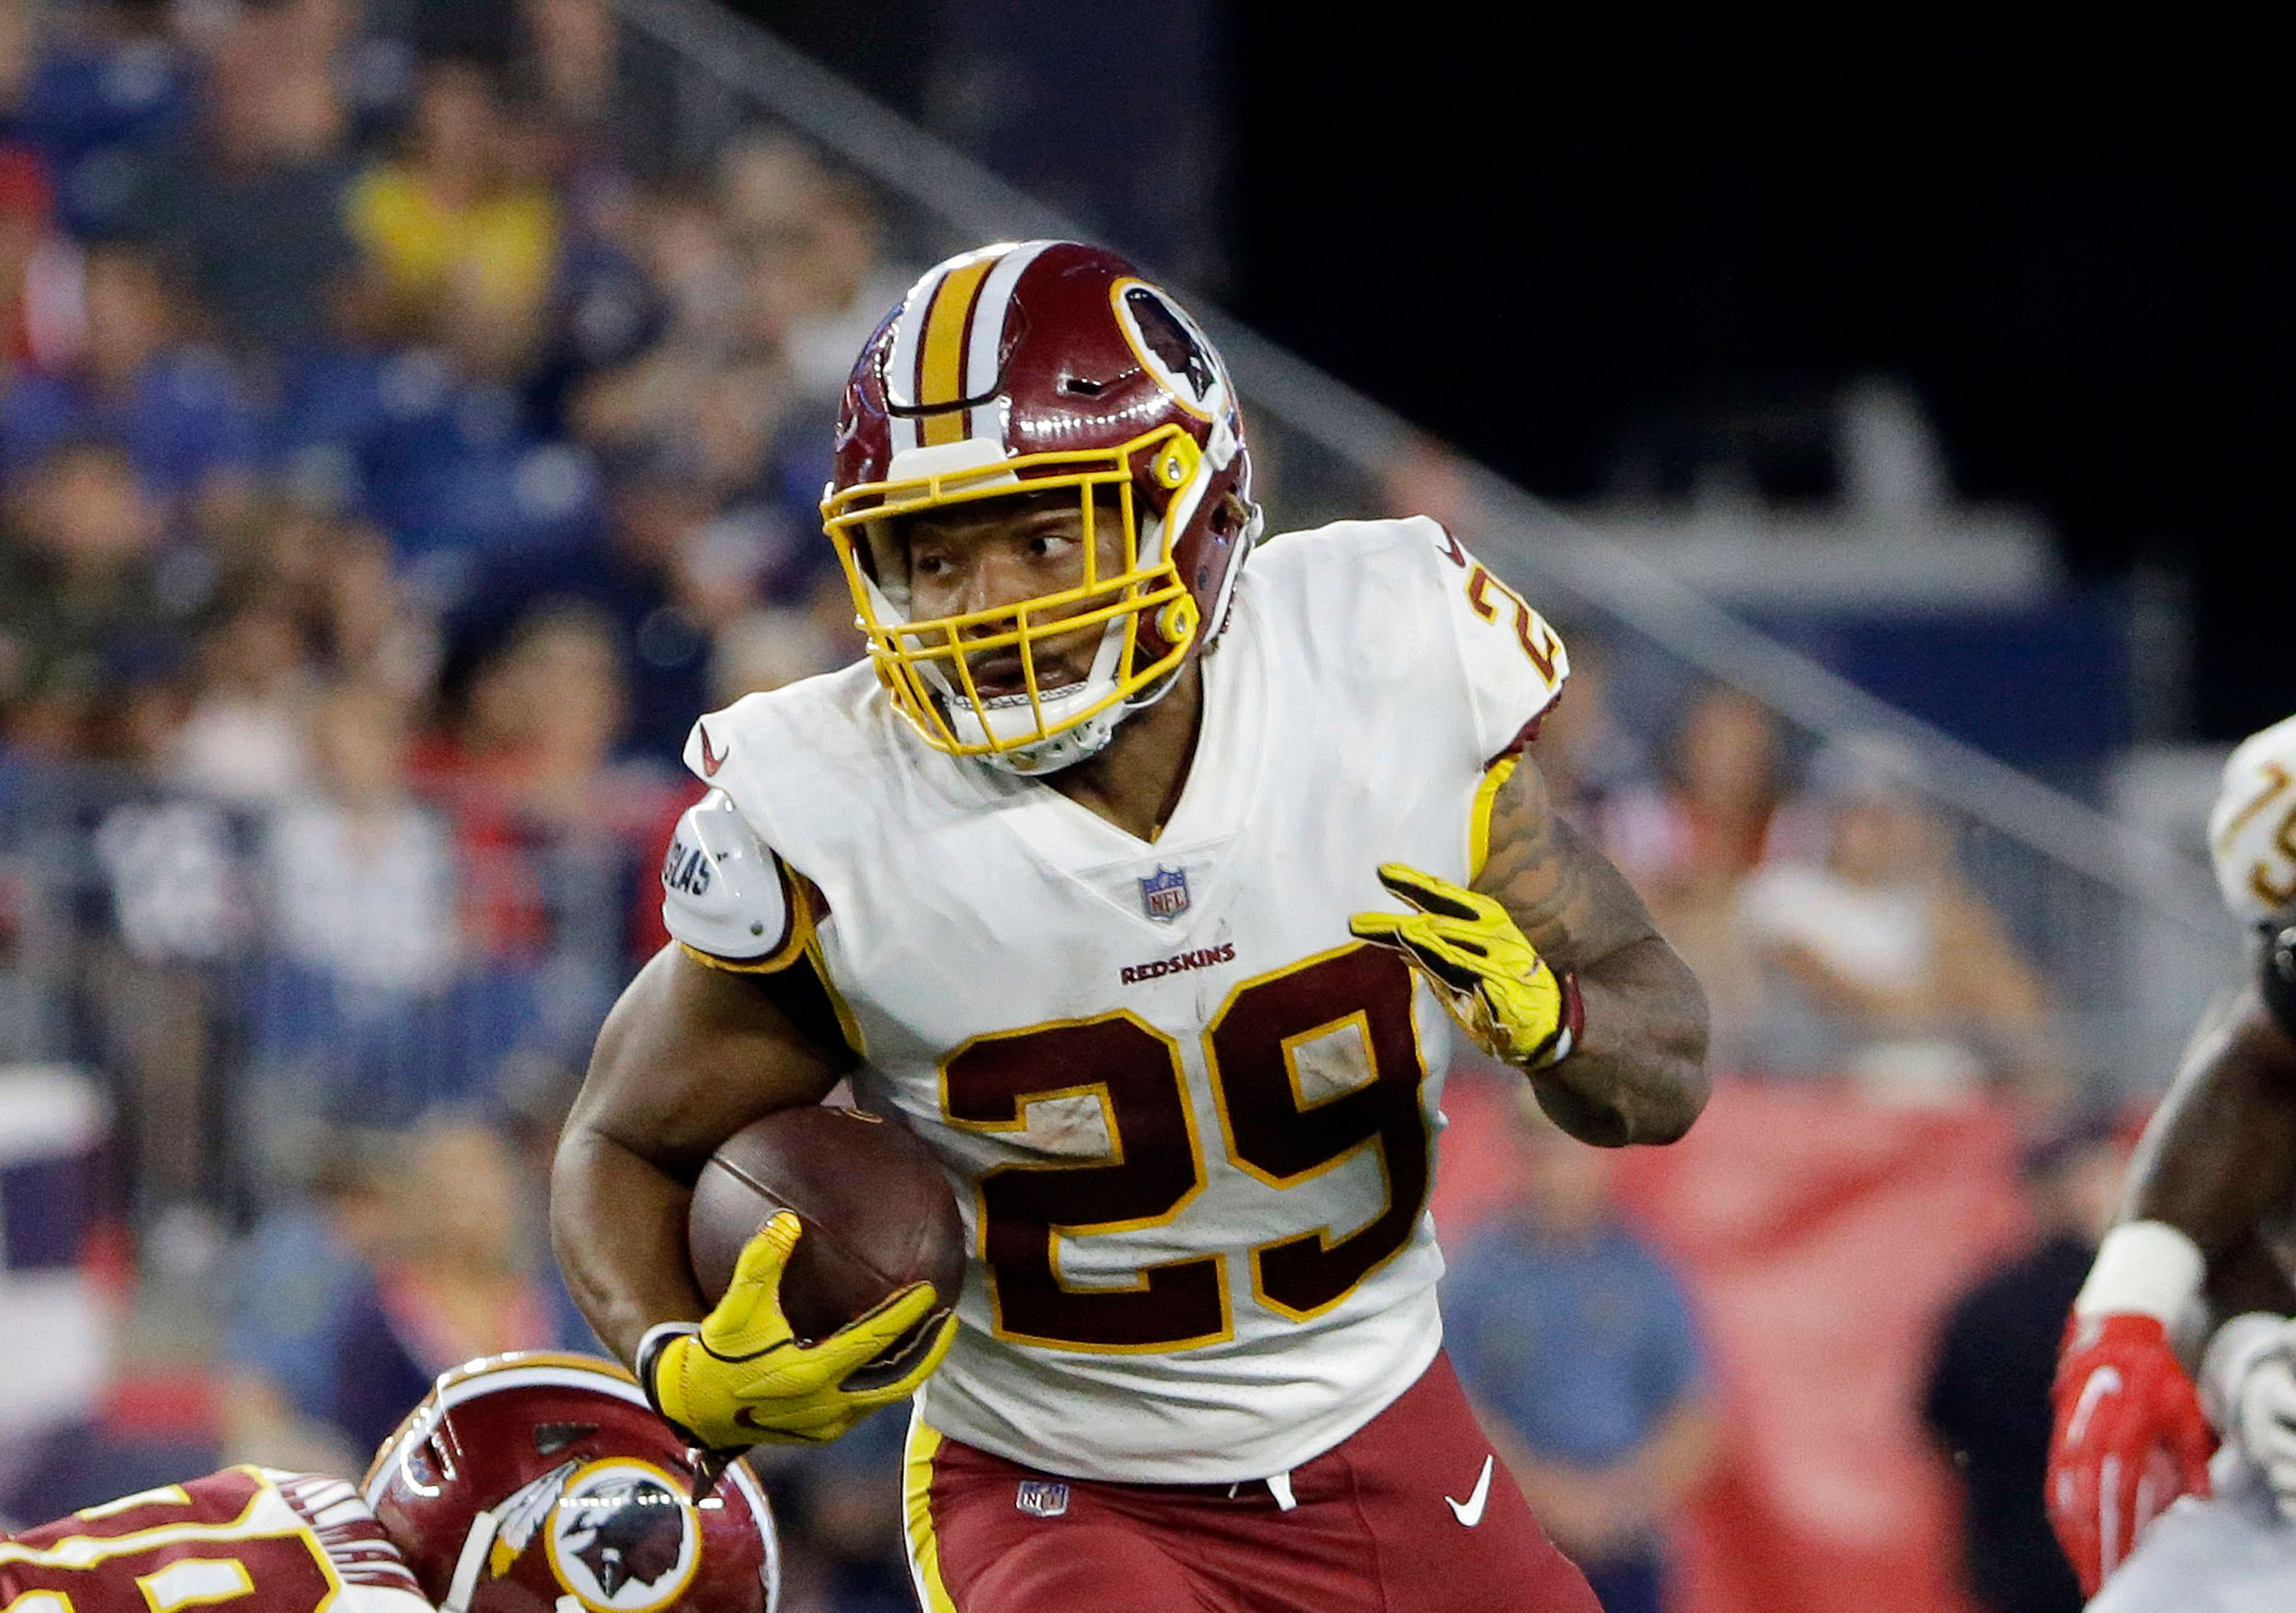 Redskins RBs post encouraging messages for Derrius Guice